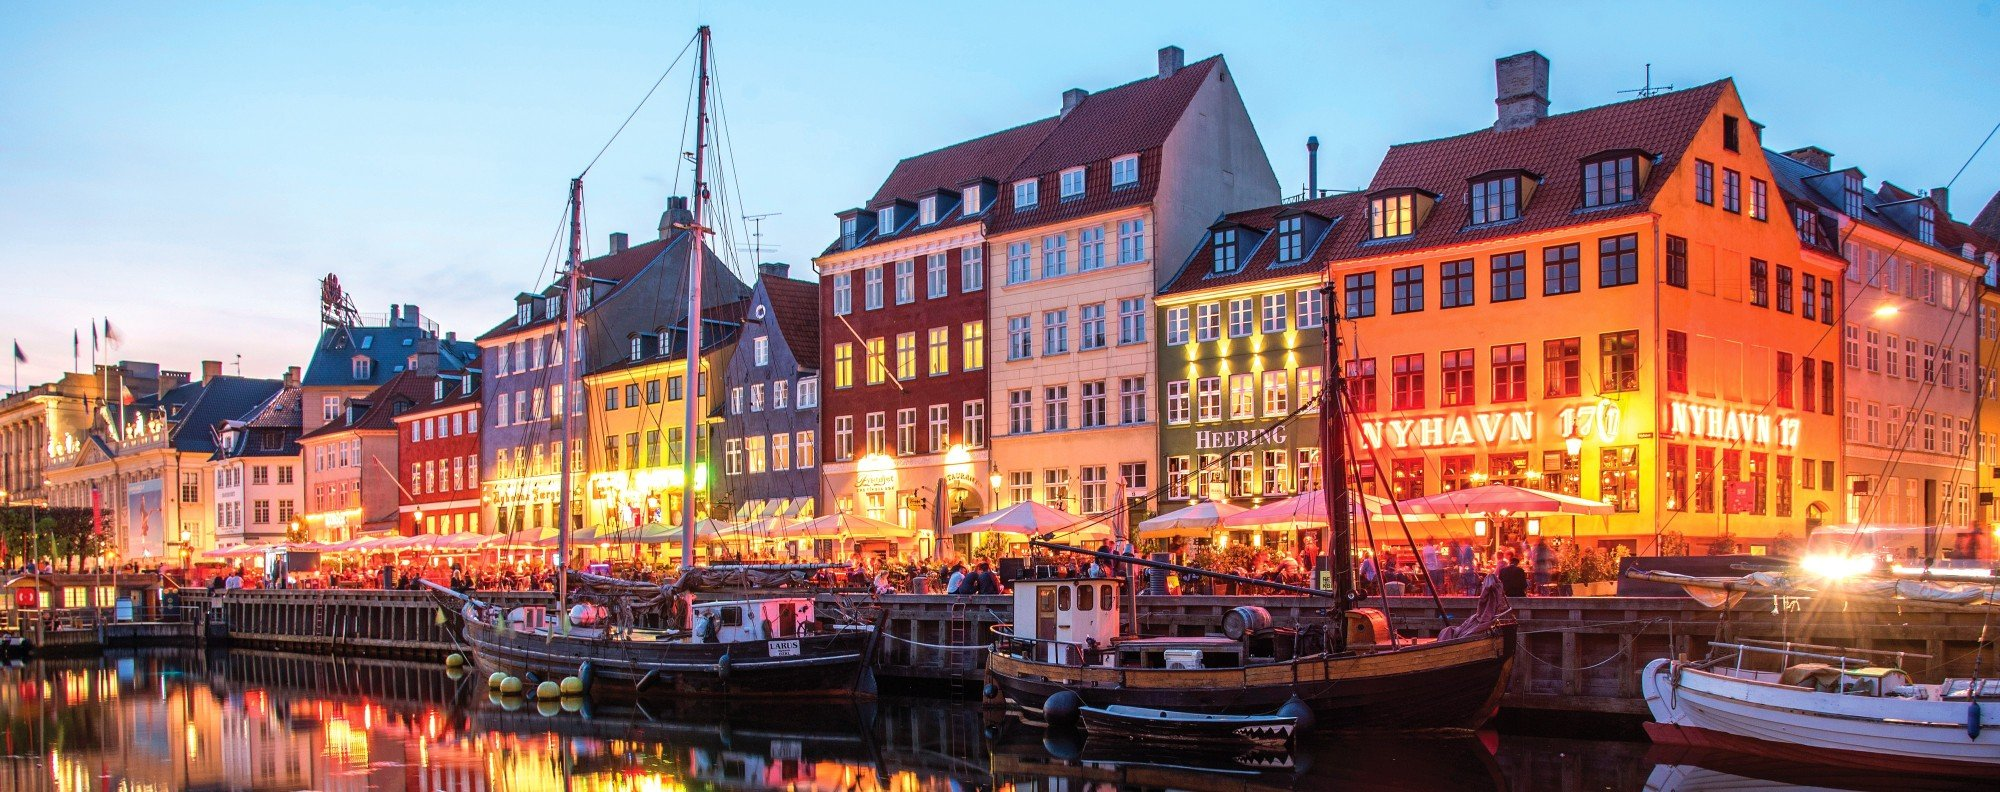 why denmark is such a happy country a copenhagen holiday explains